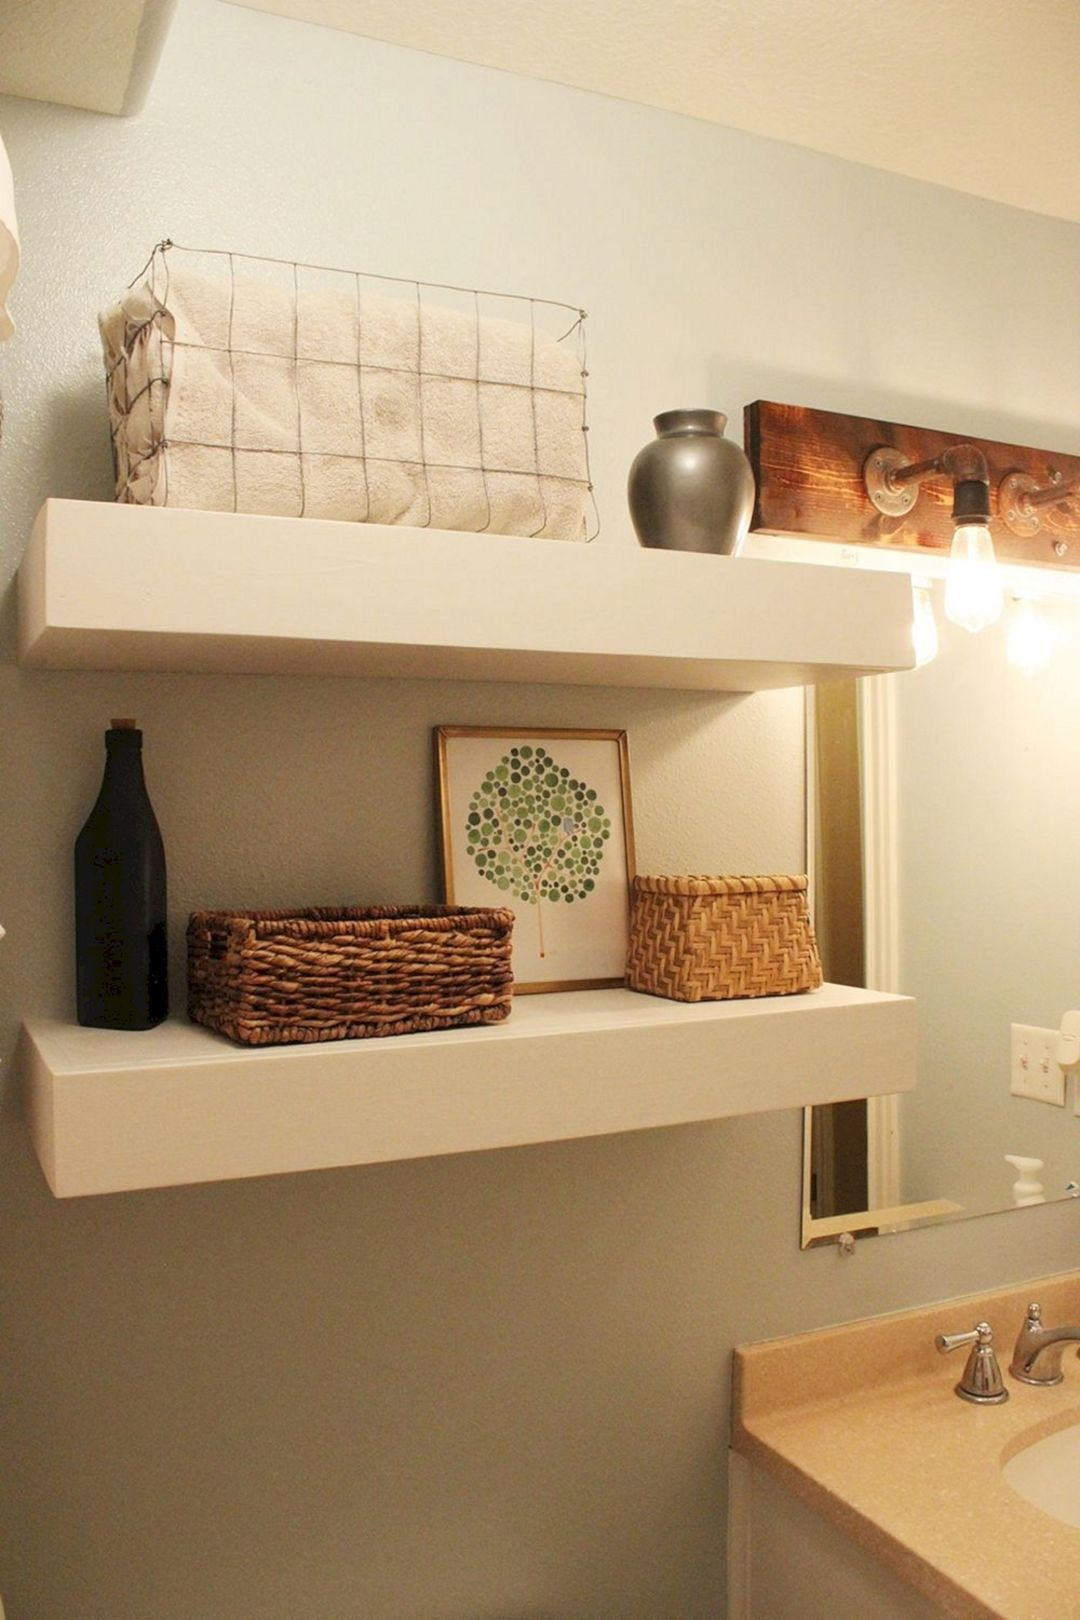 24 Diy Bathroom Wall Shelves Design And Organization Ideas Floating Shelves Diy Bathroom Wall Shelves Floating Shelves